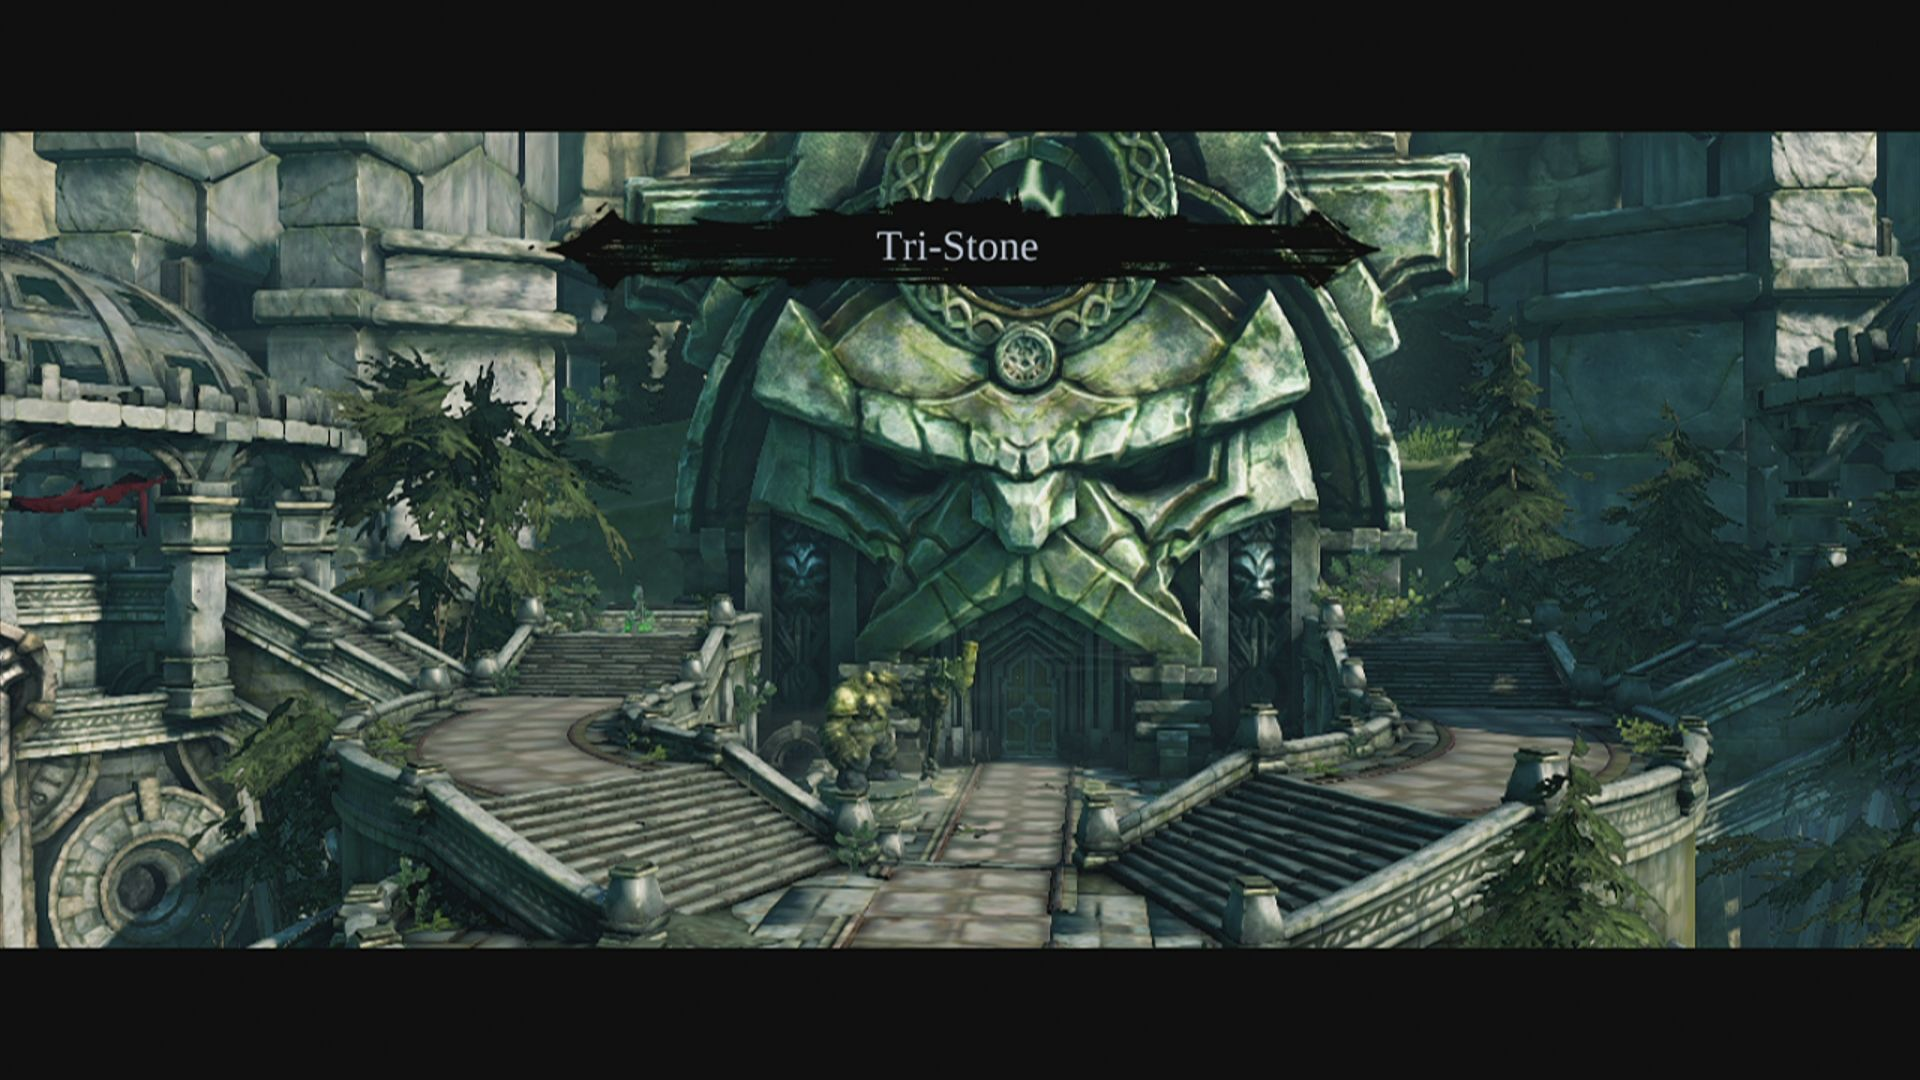 Darksiders II Xbox 360 Welcome to Tri-Stone, the first major hub in your adventure